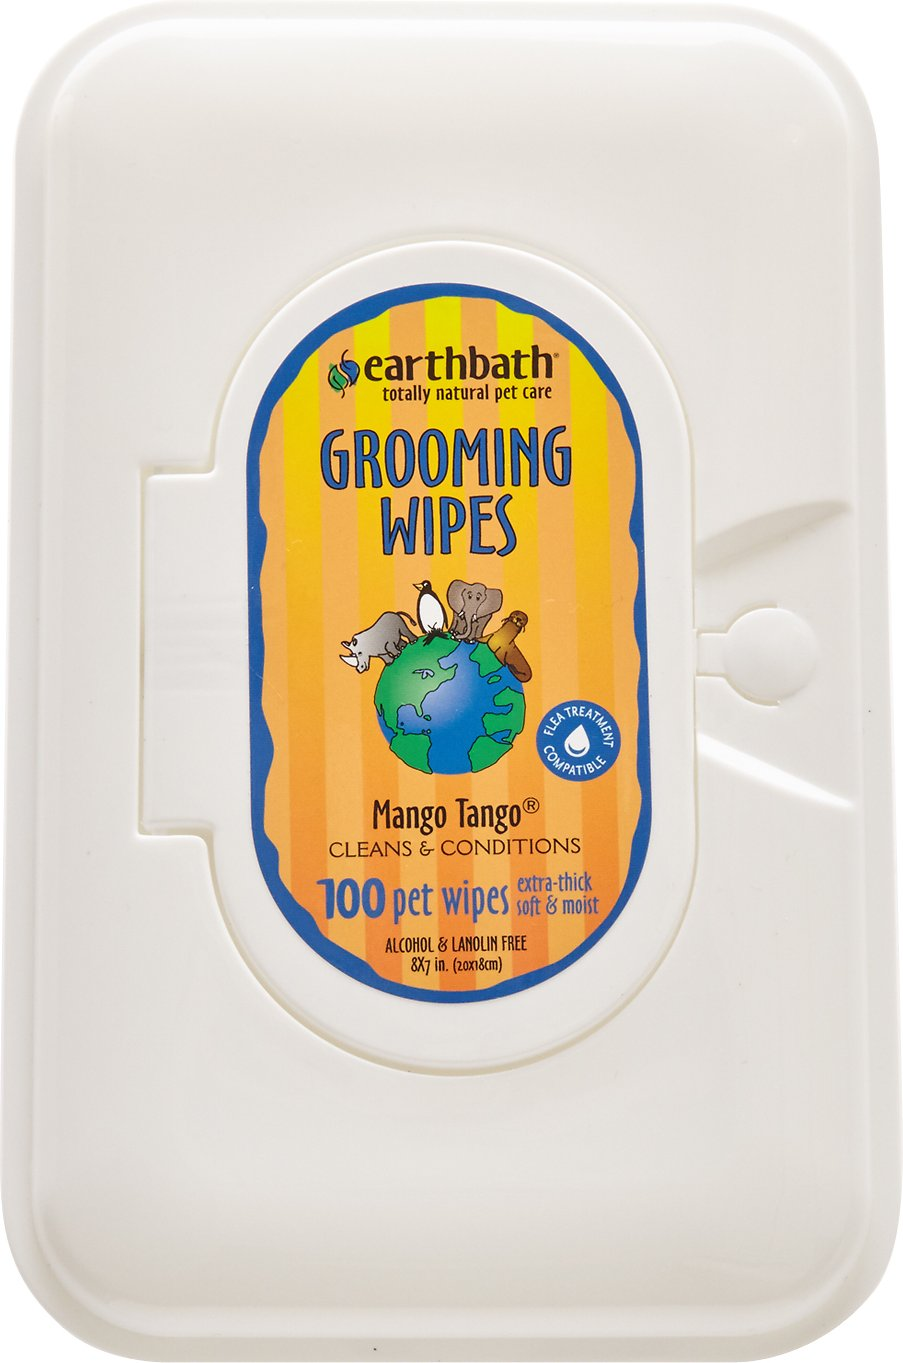 Earthbath Mango Tango Grooming Wipes for Dogs & Cats, 100-count (Size: 100-count) Image